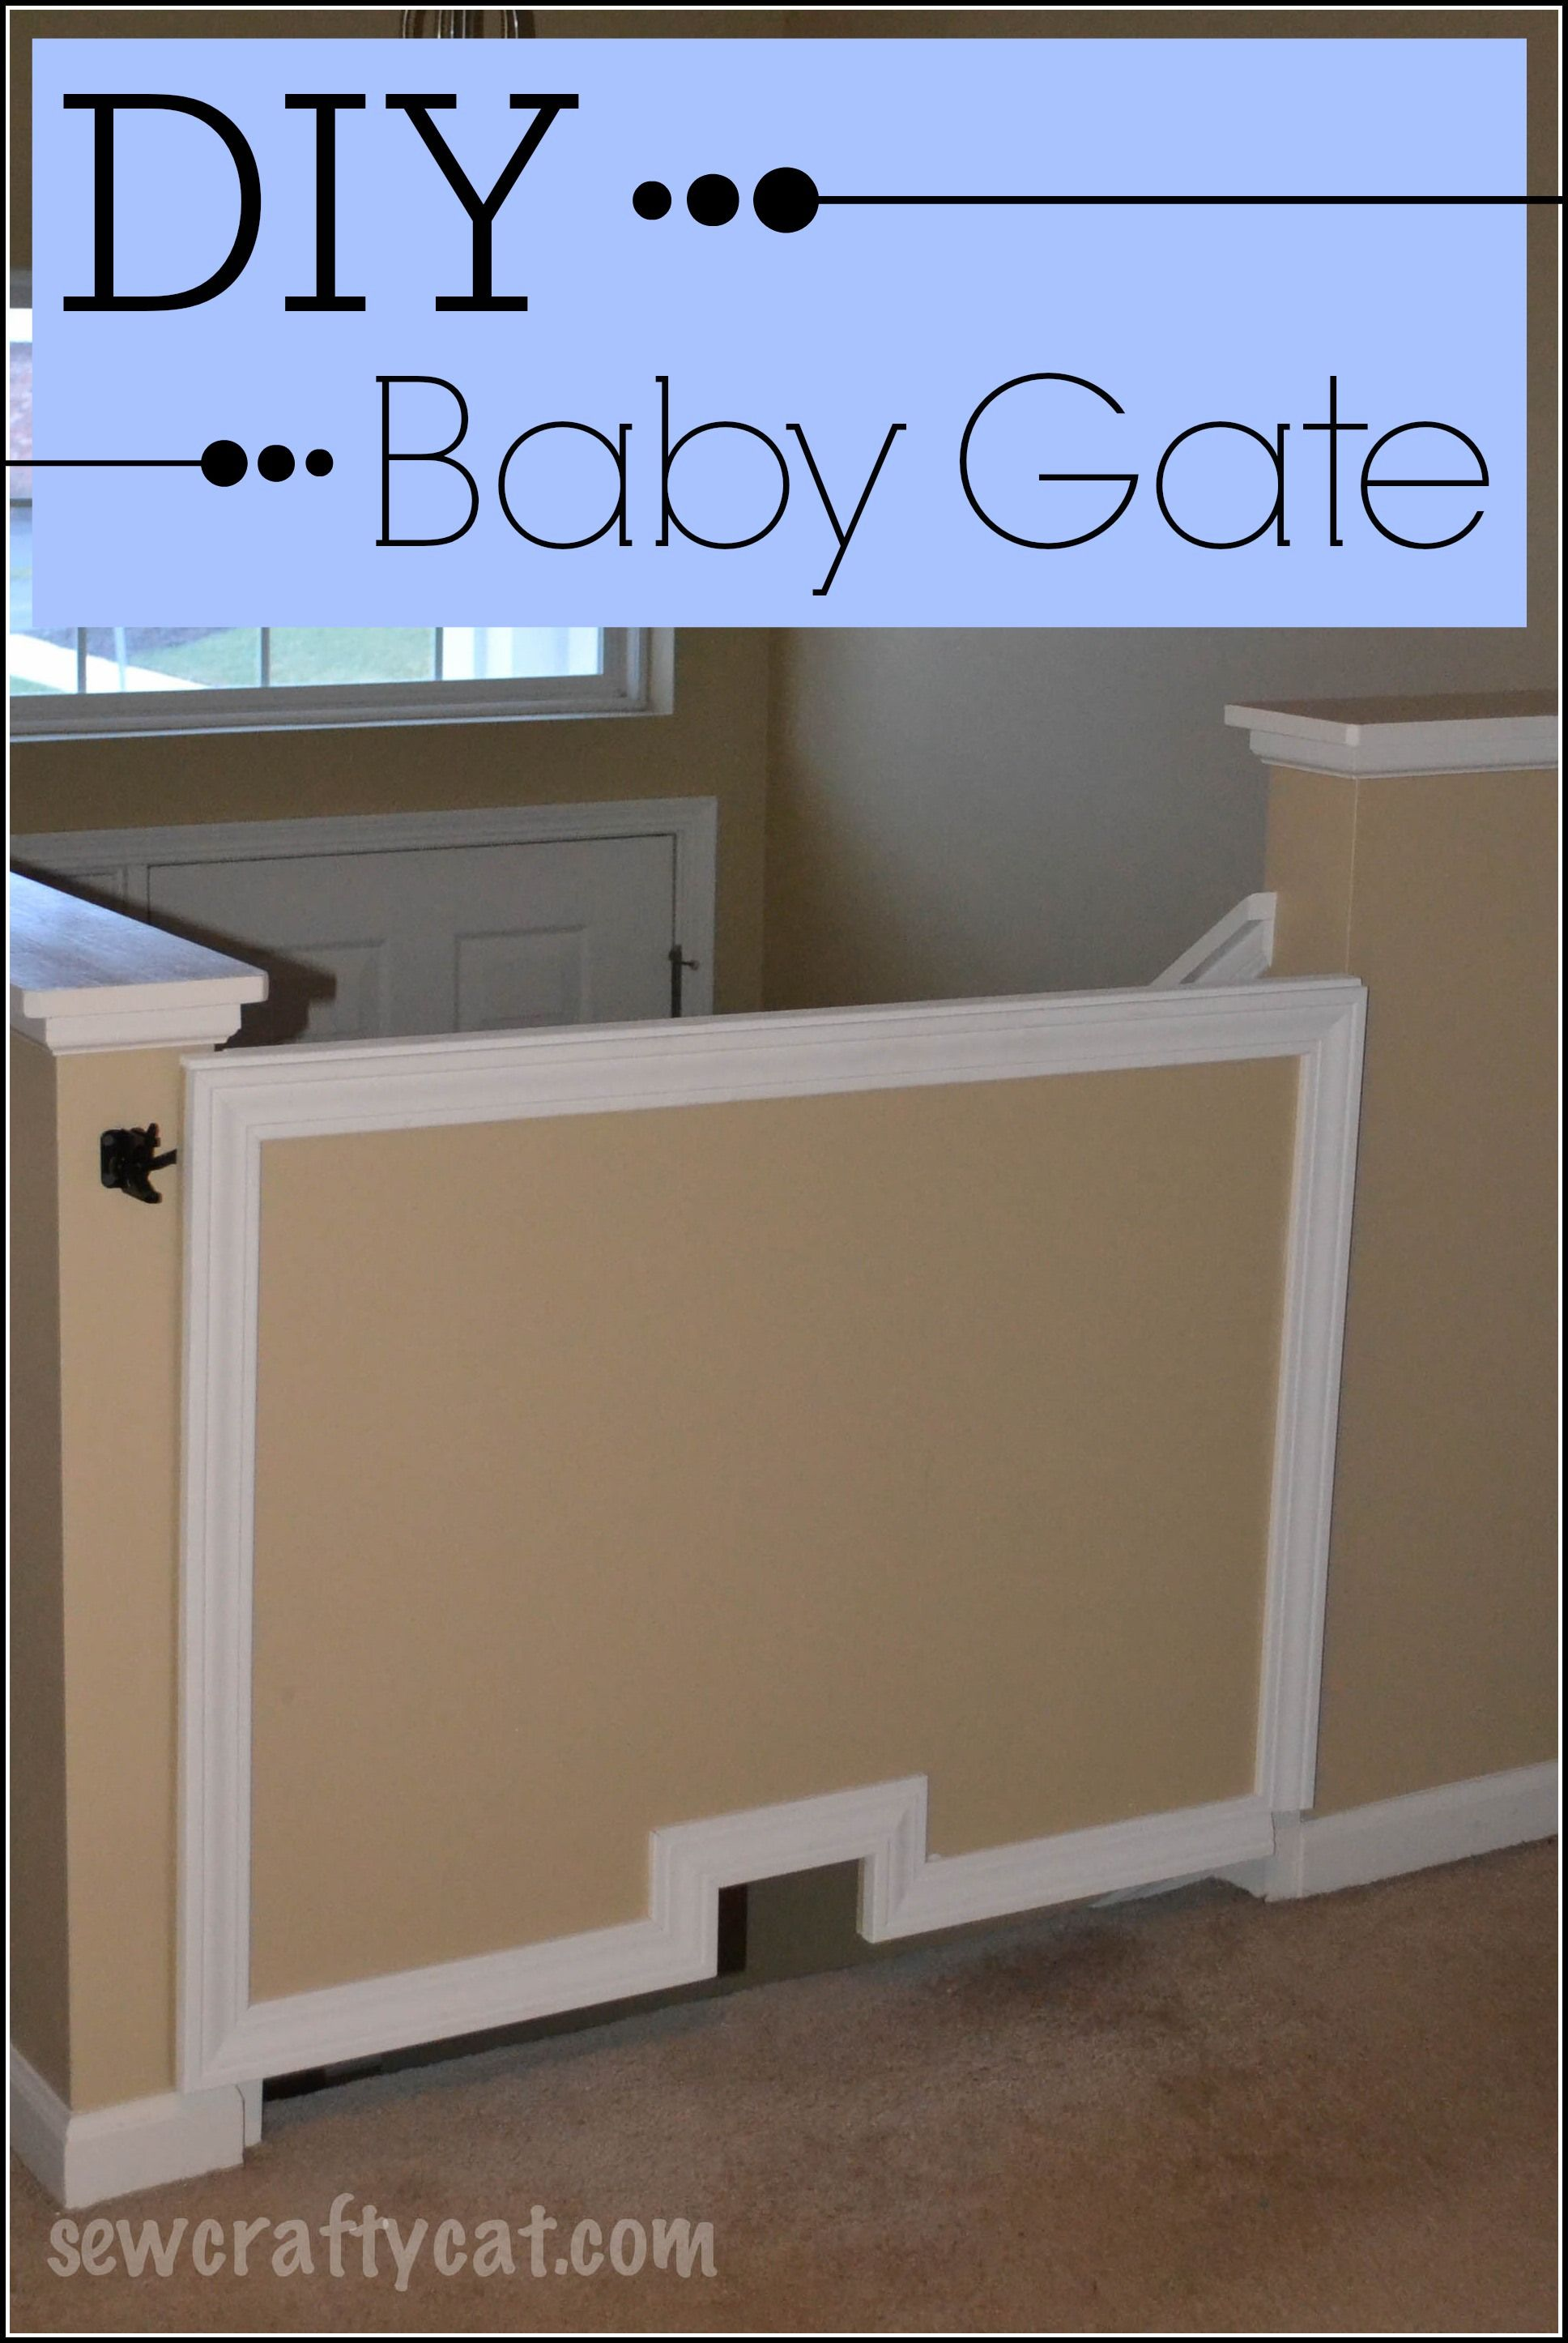 Diy Baby Gate Sewcraftycat Com Baby Gate Made Of Plywood